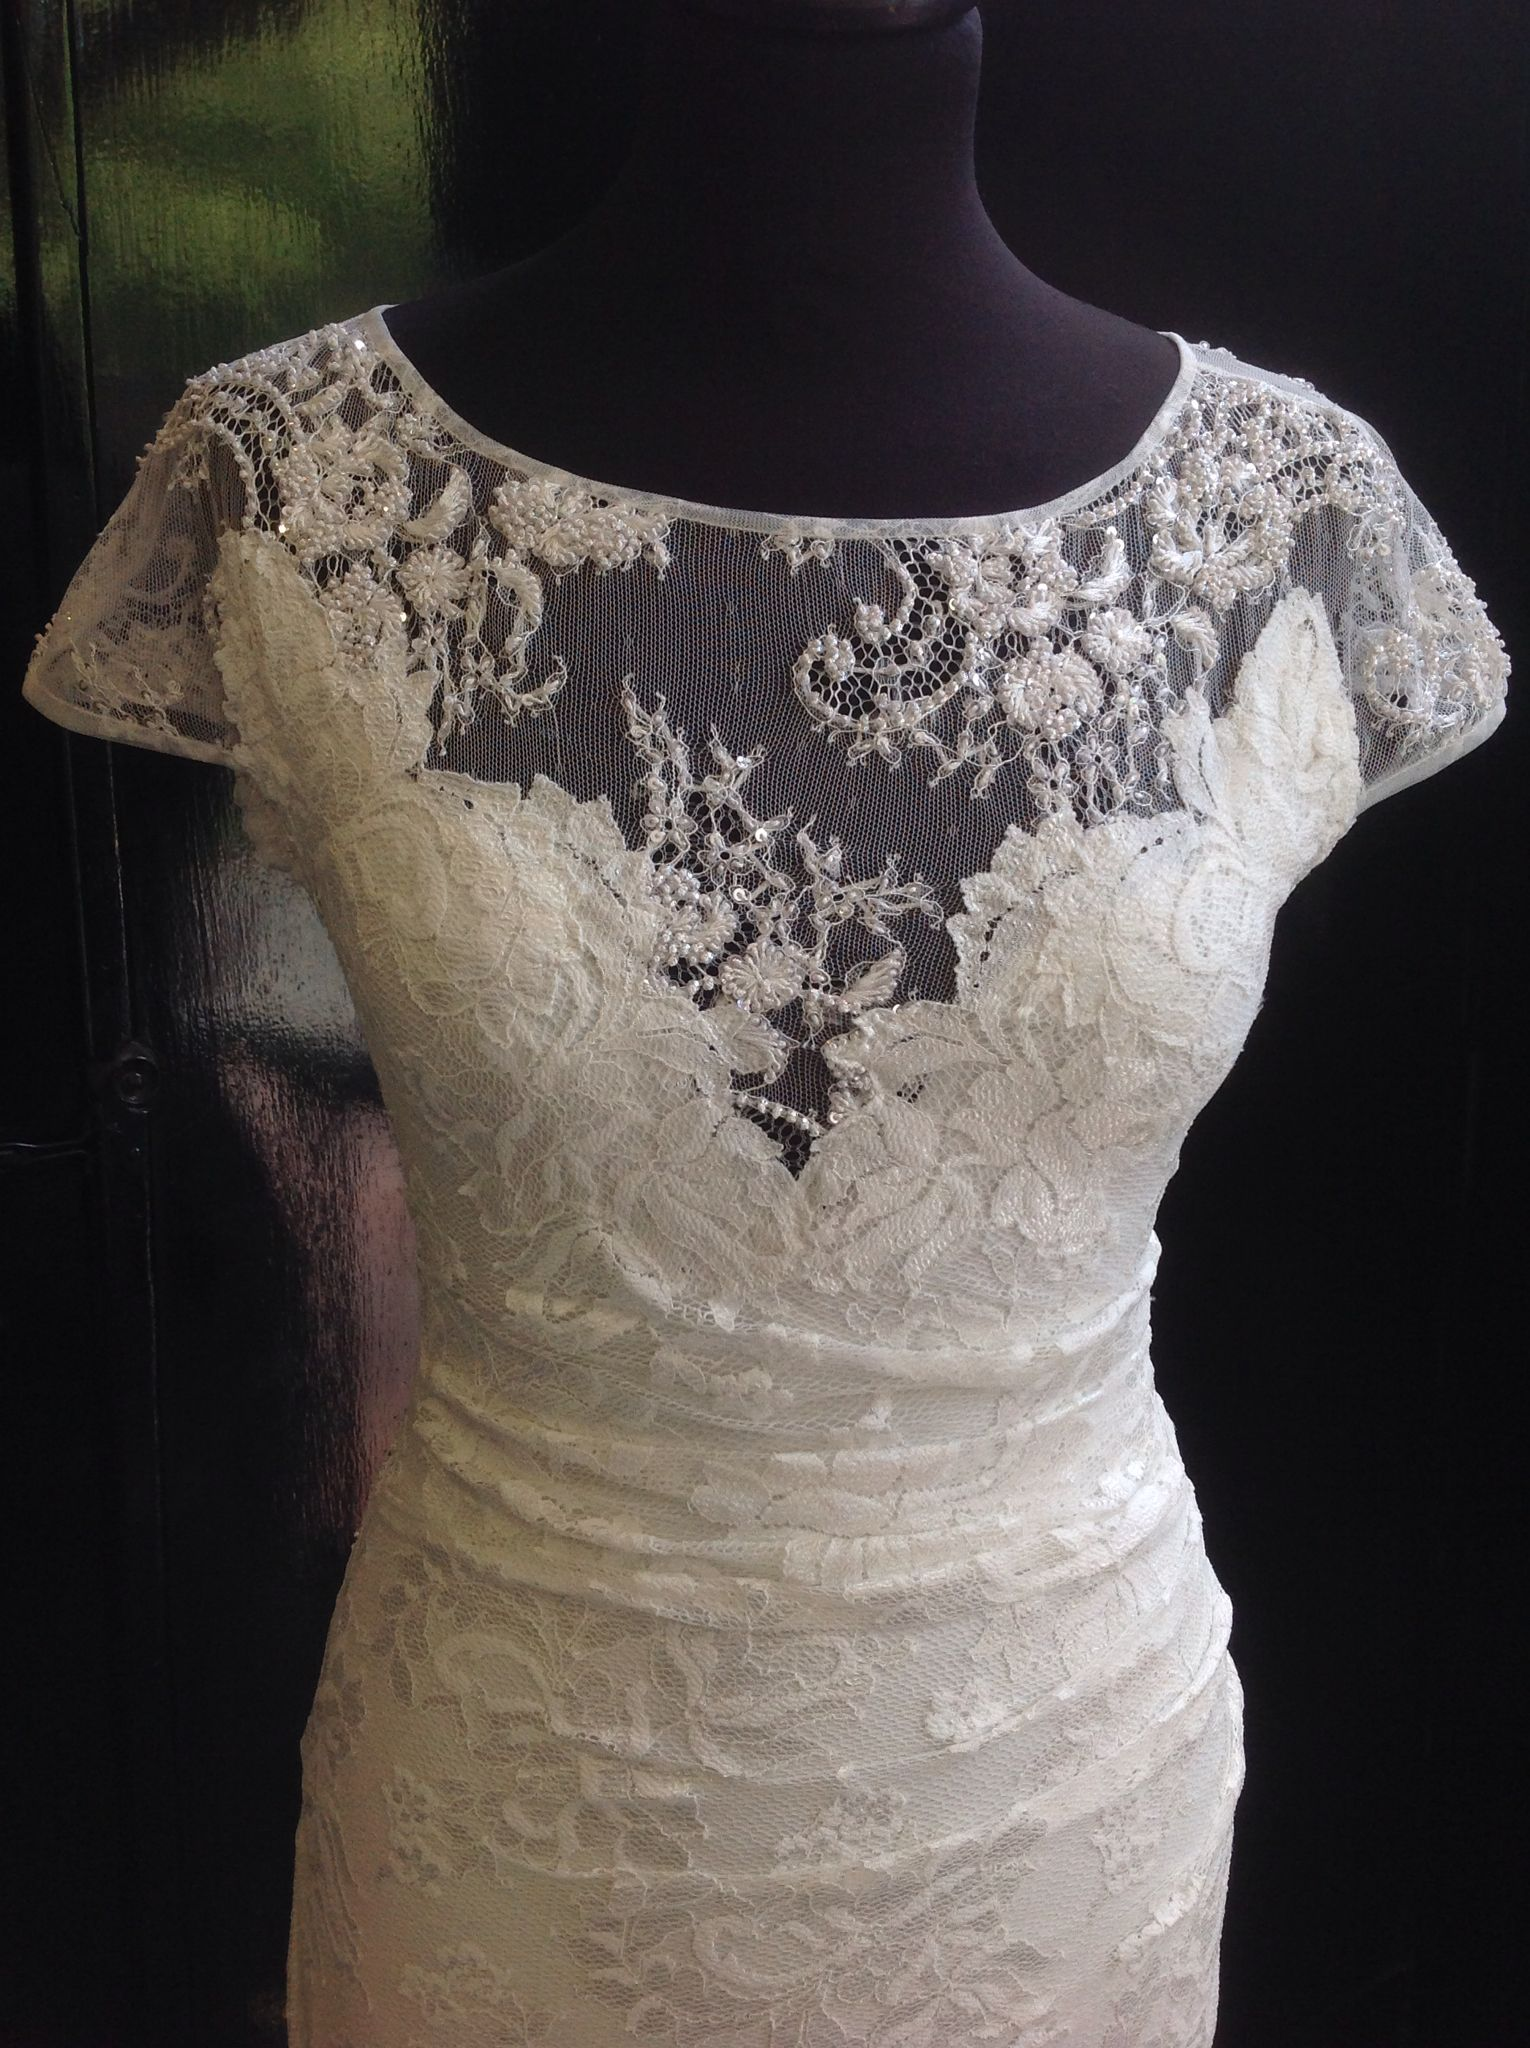 Such a pretty front on this olvis lace dress style wedding